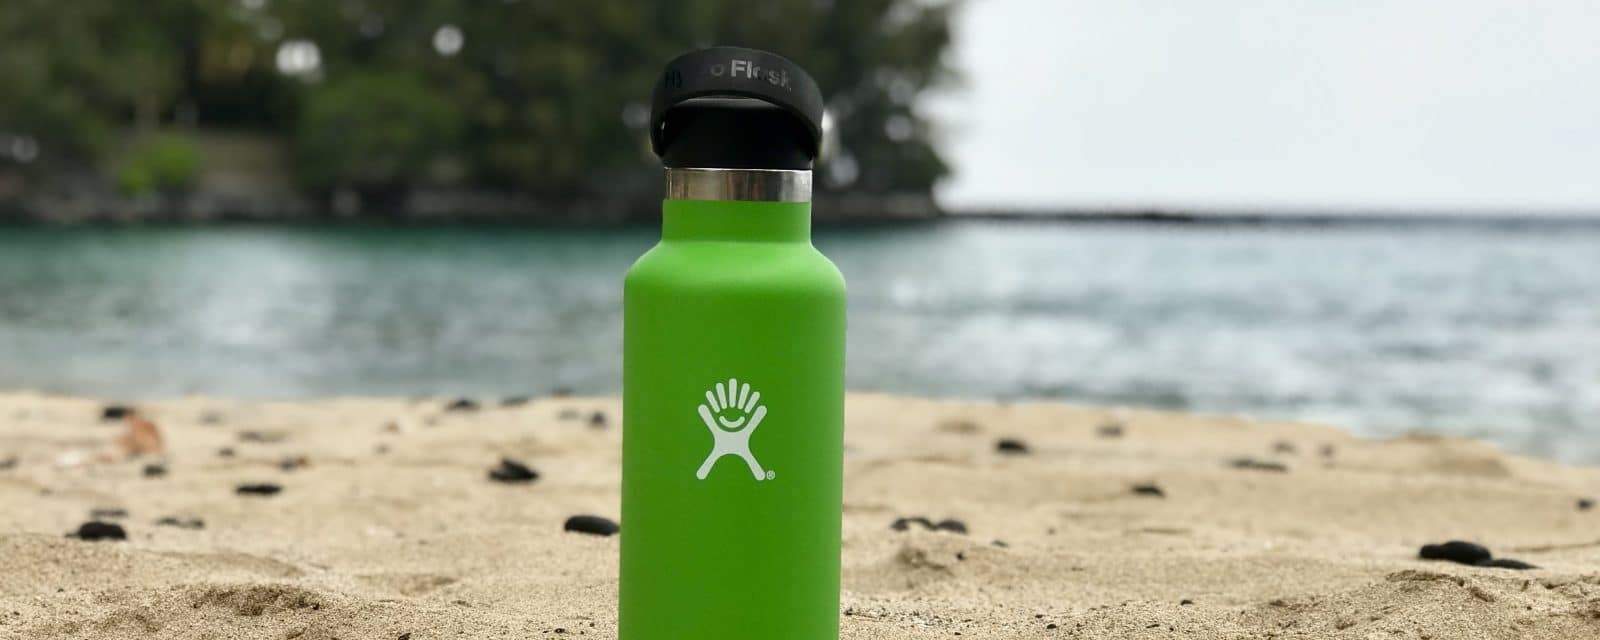 hydro flask at beach